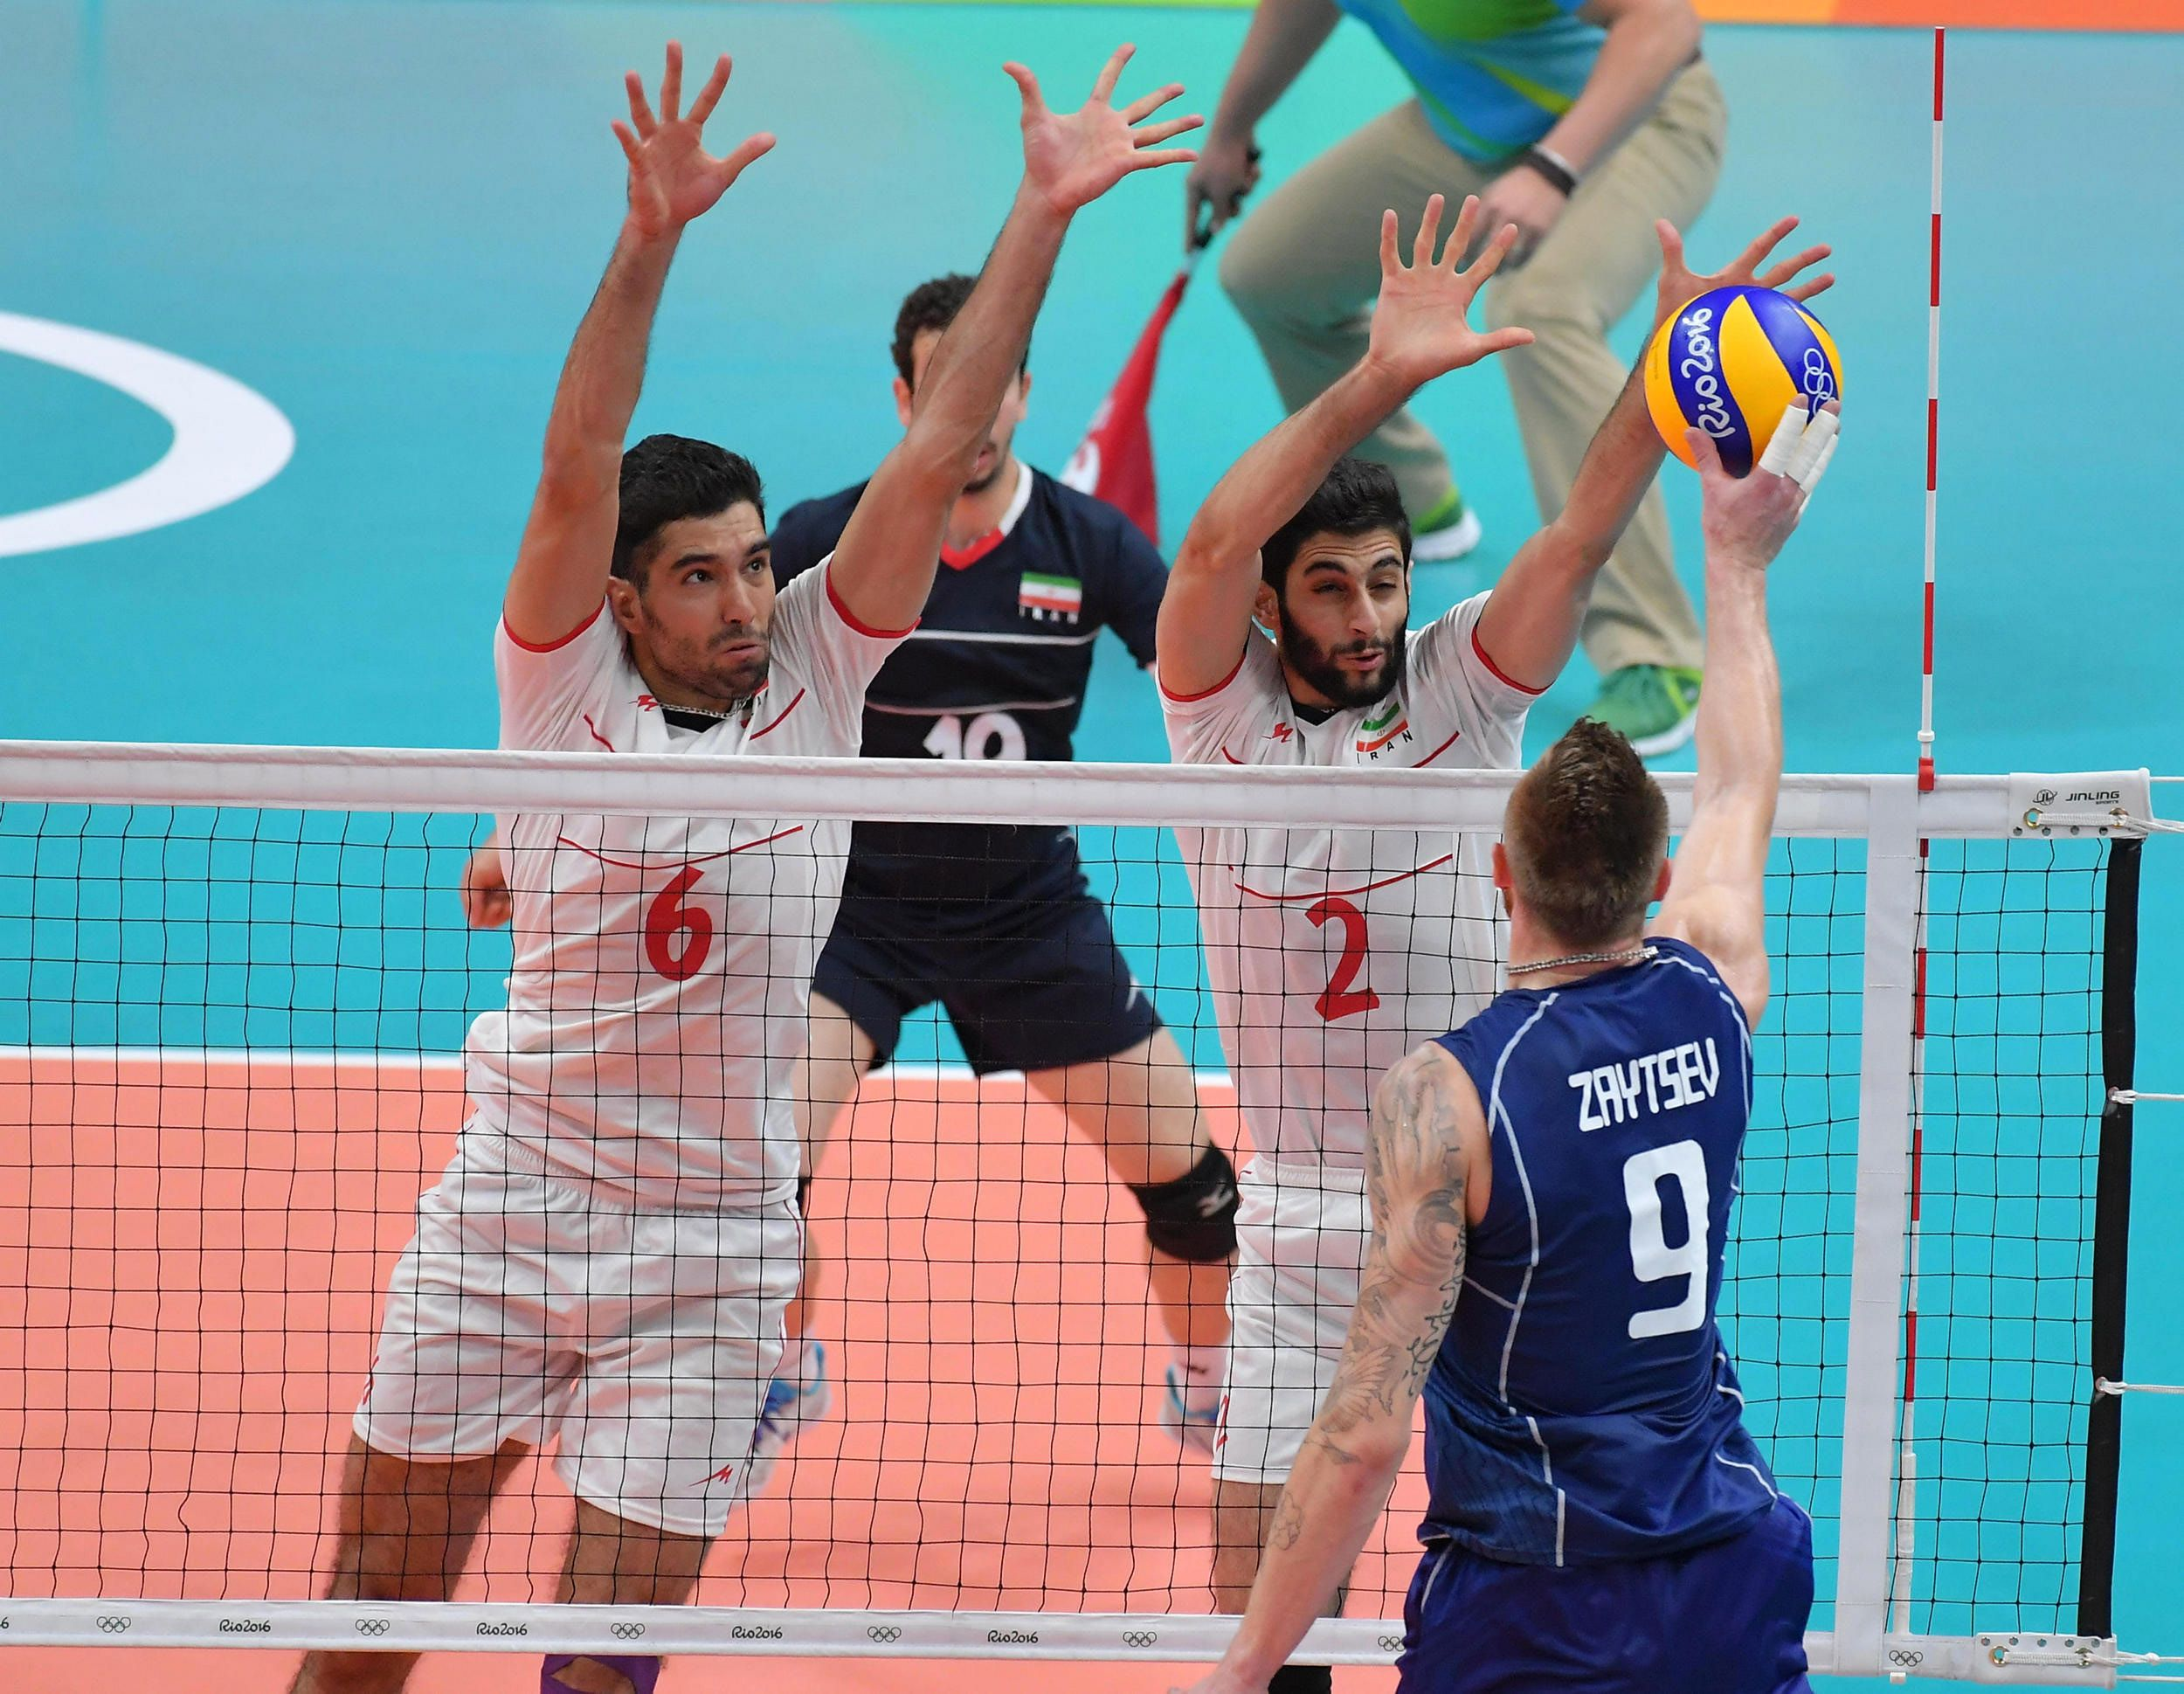 Ivan Zaytsev Spikes The Ball Against Iran In 2020 Volleyball Basketball Court Sports